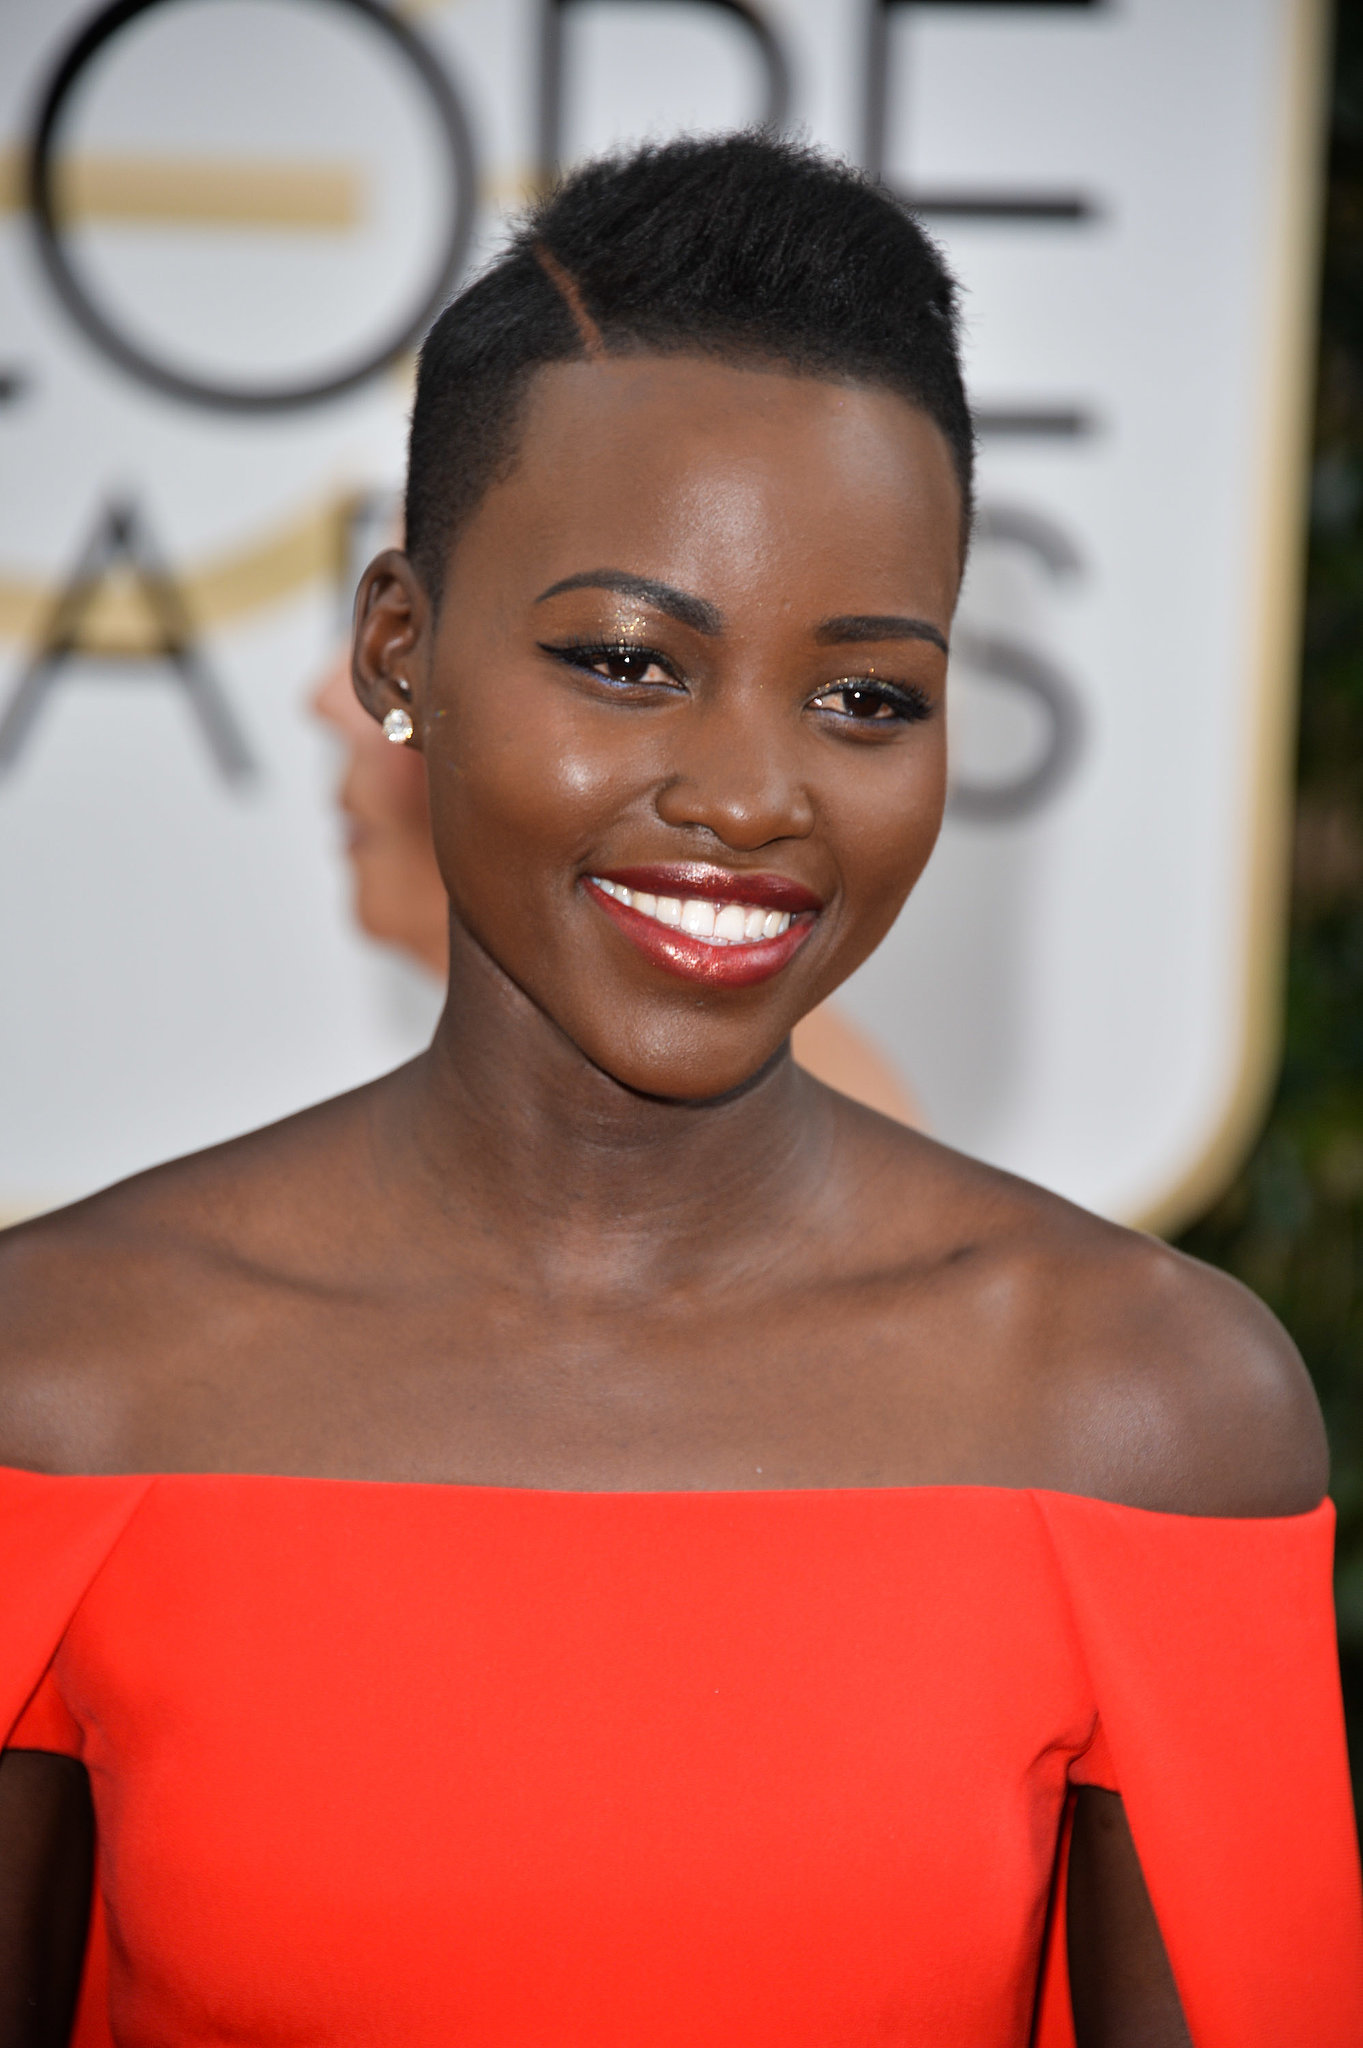 Lupita Nyong'o expected to slay her role in queen of Katwe